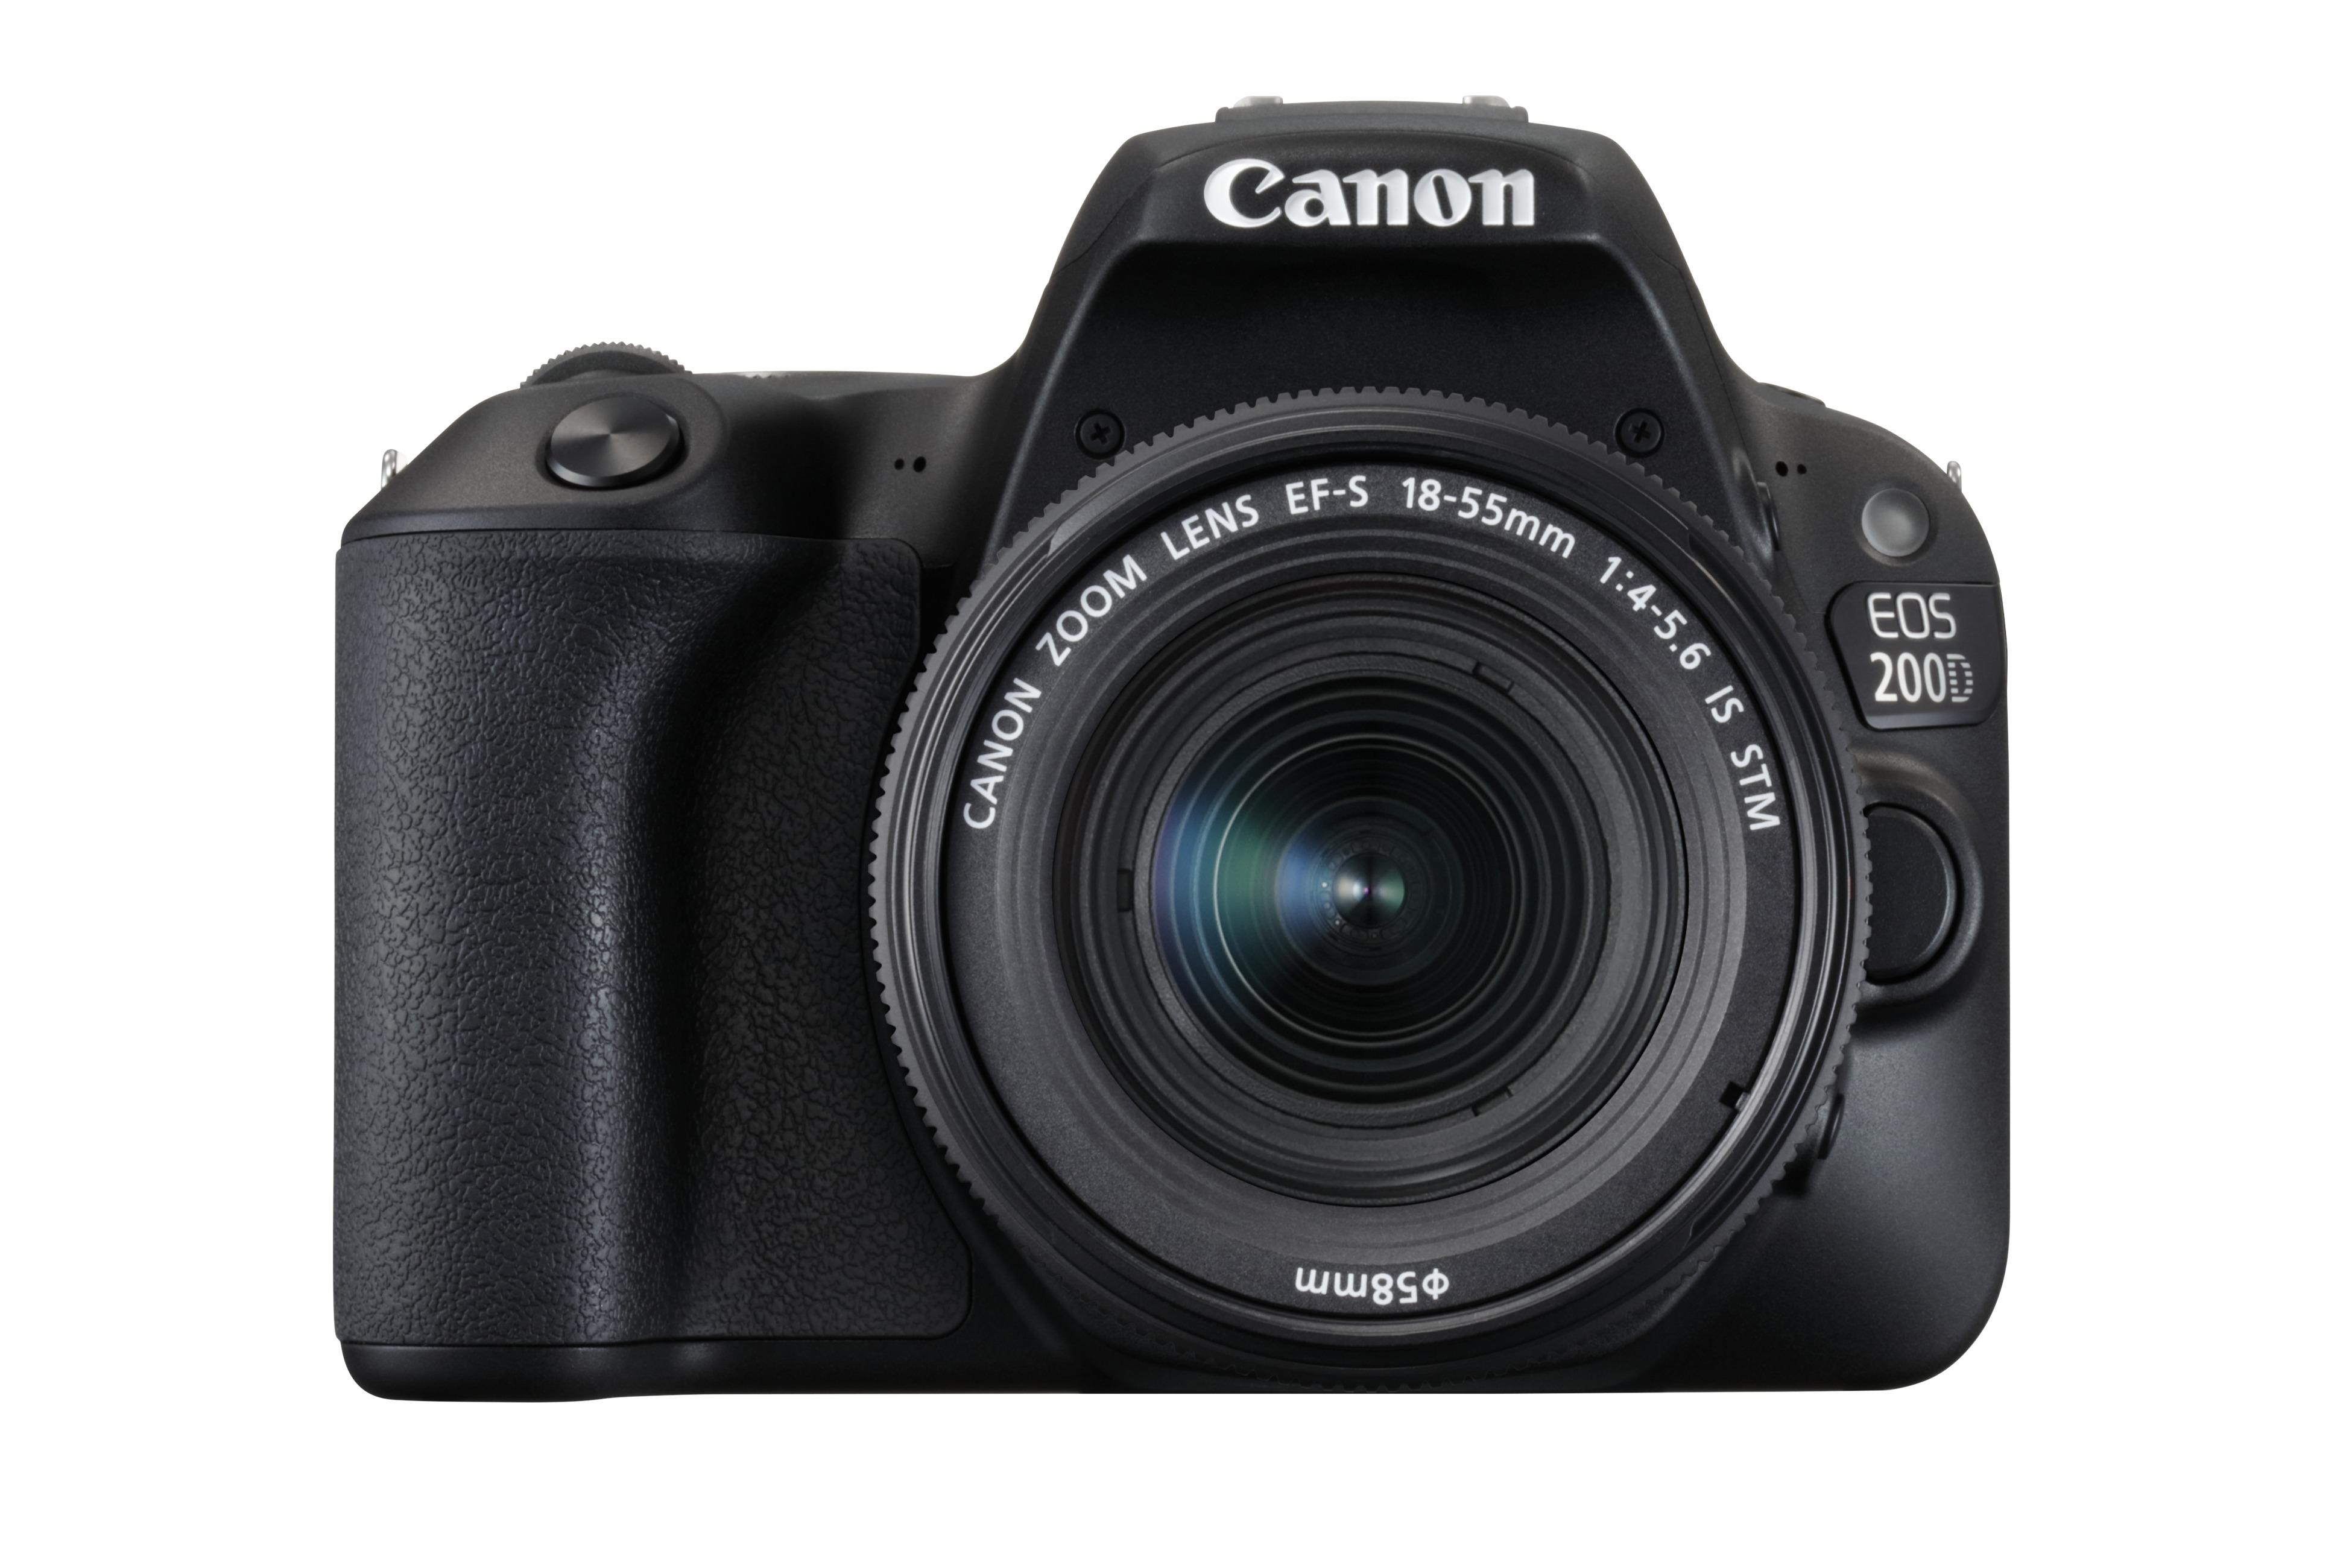 What's the best Canon camera for beginners?